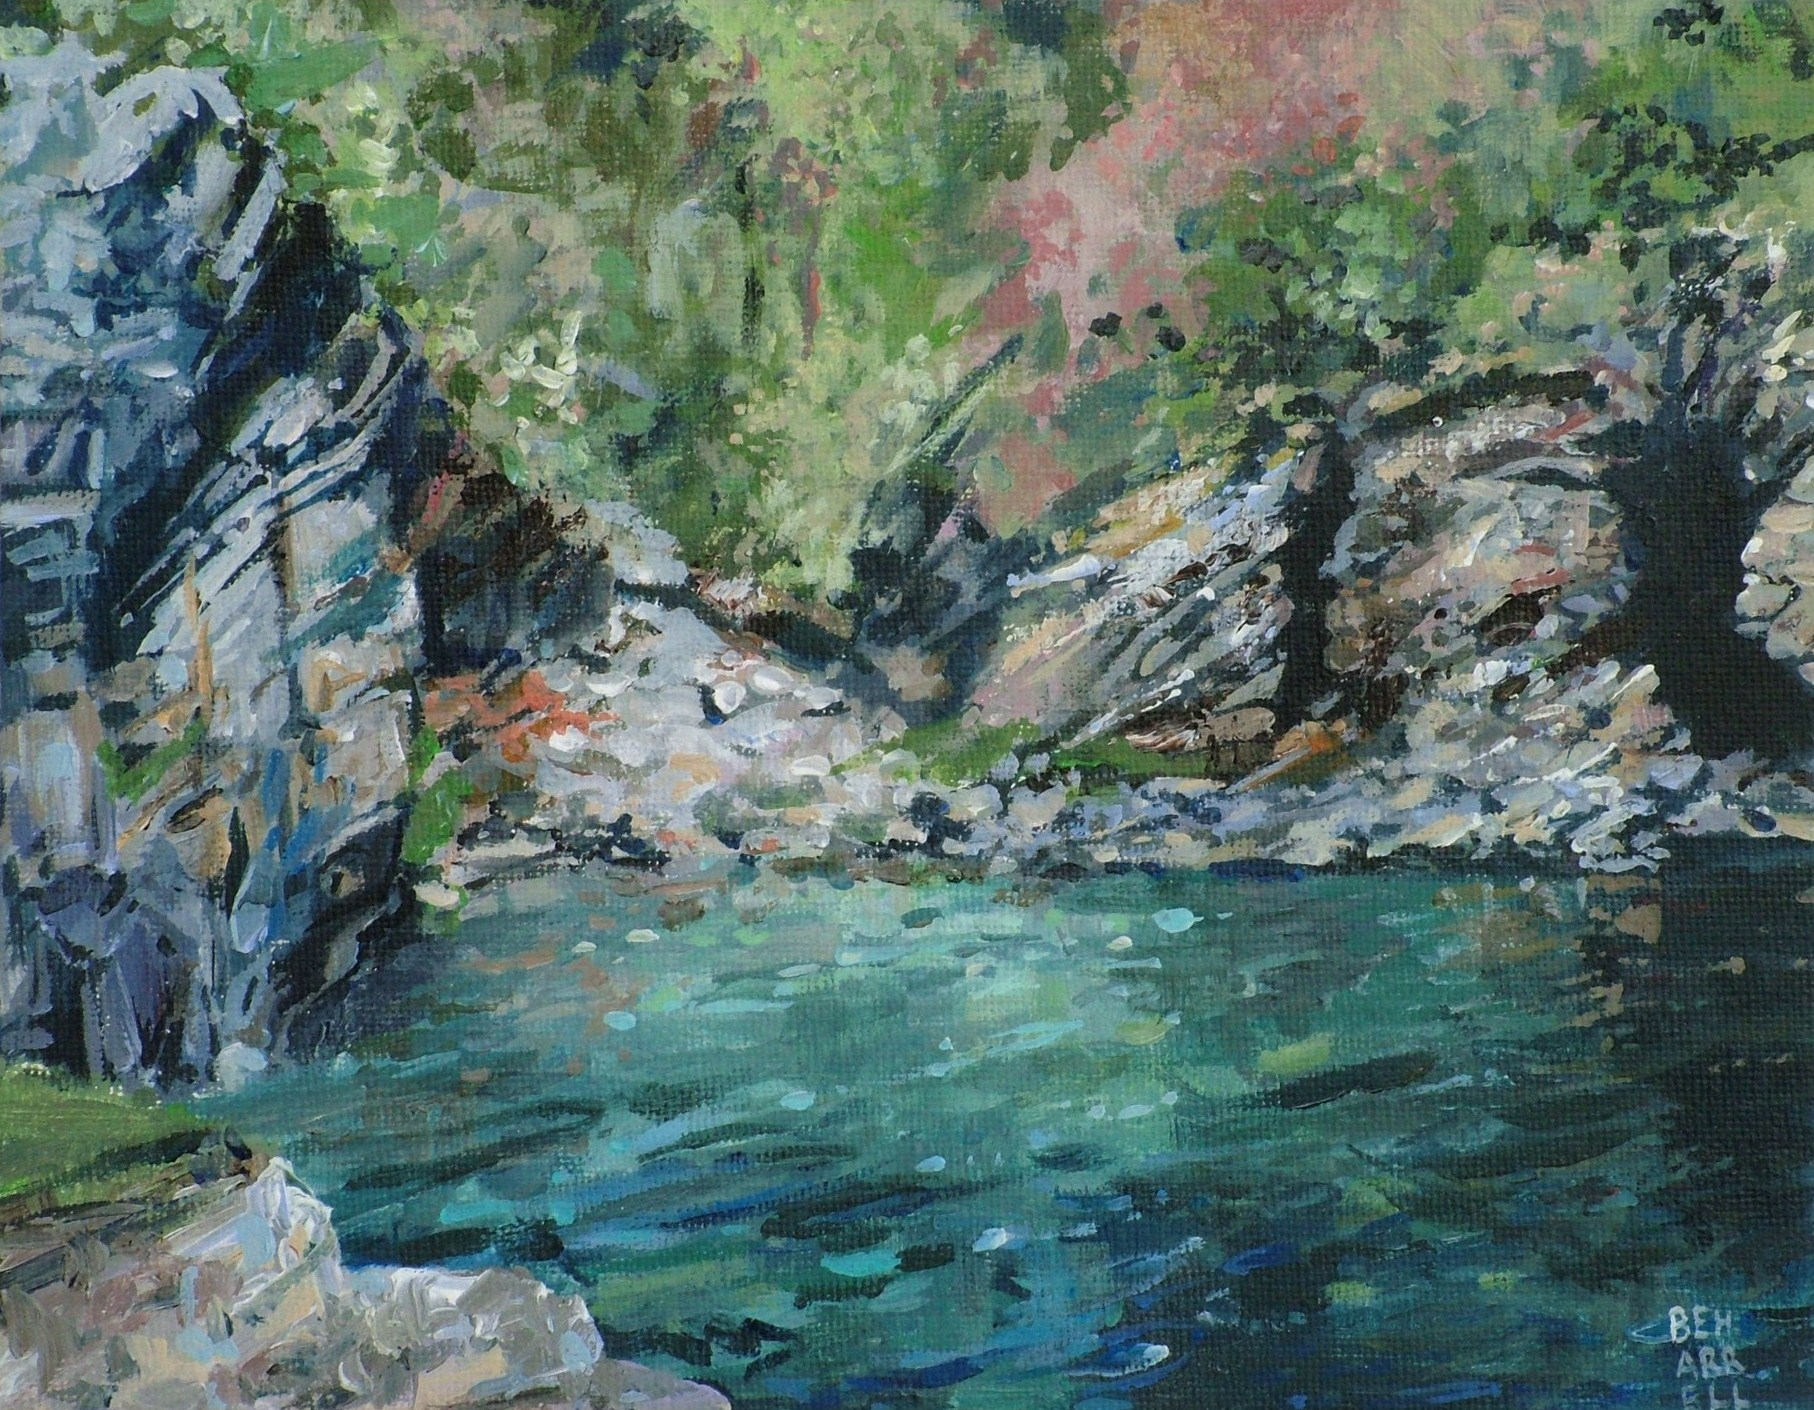 Turquoise & Blue at Prussia Cove - Cornish Art Gallery